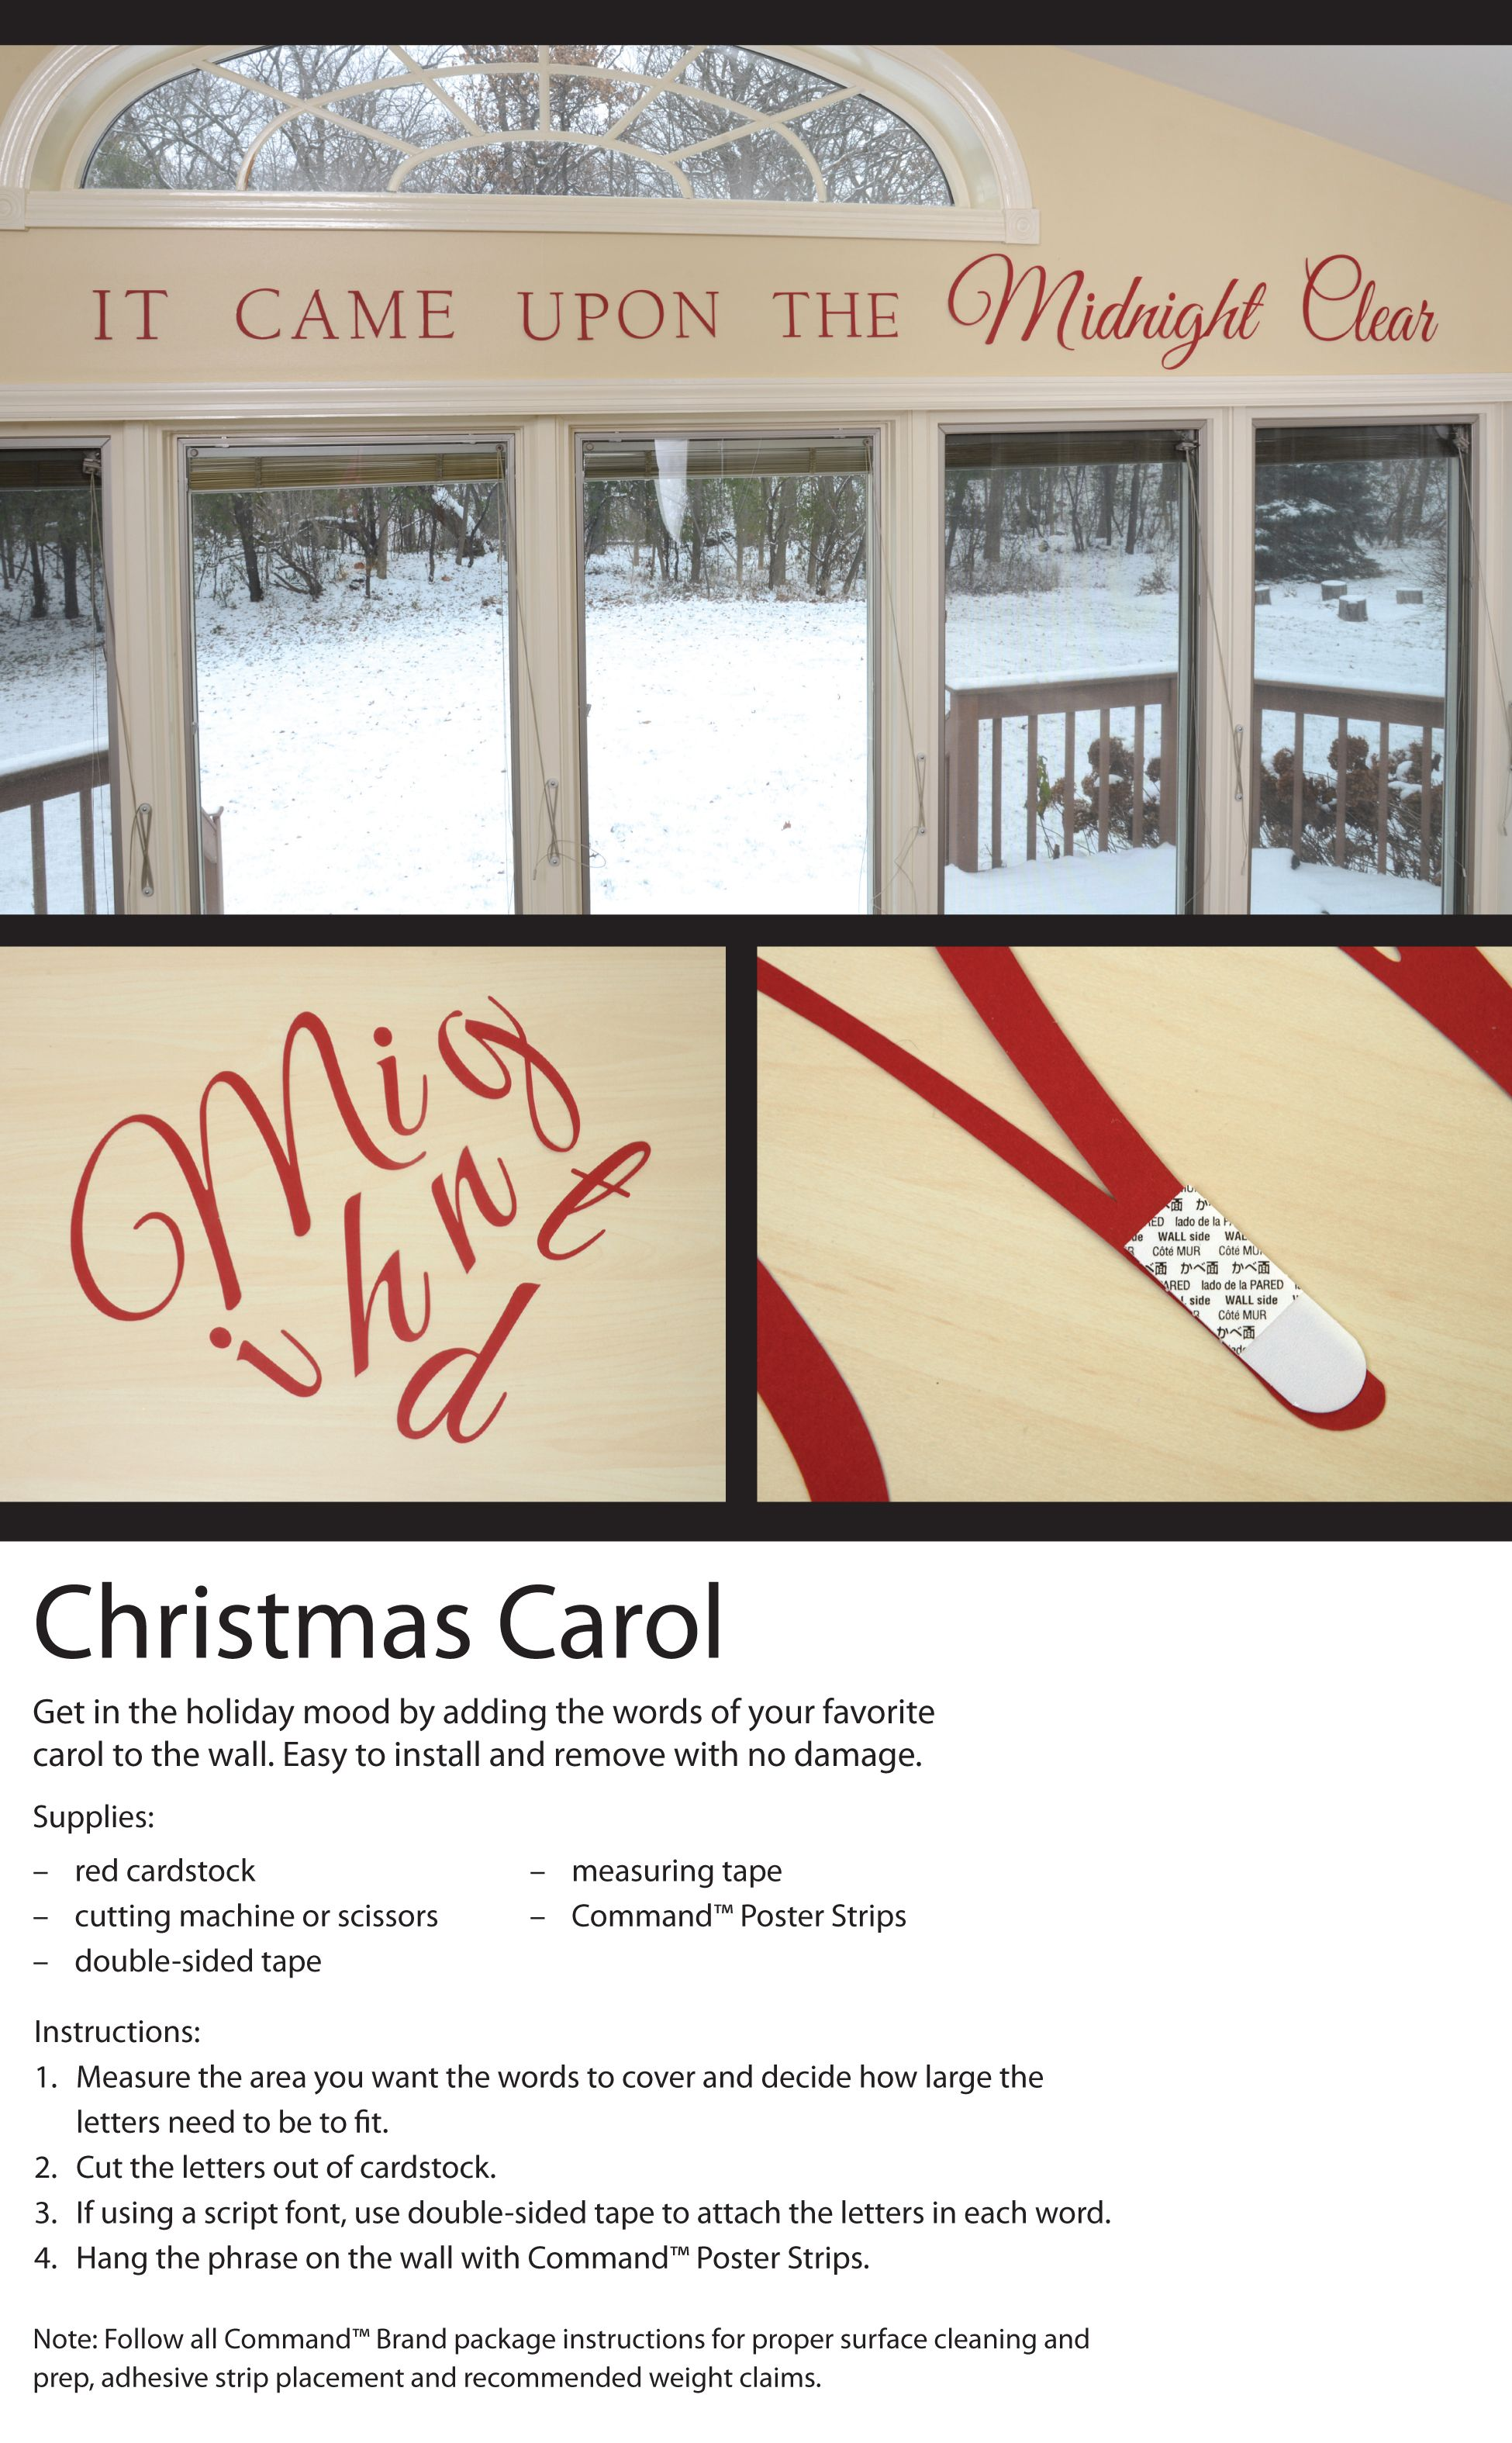 Adding A Christmas Carol Phrase To Your Wall Is Easy And